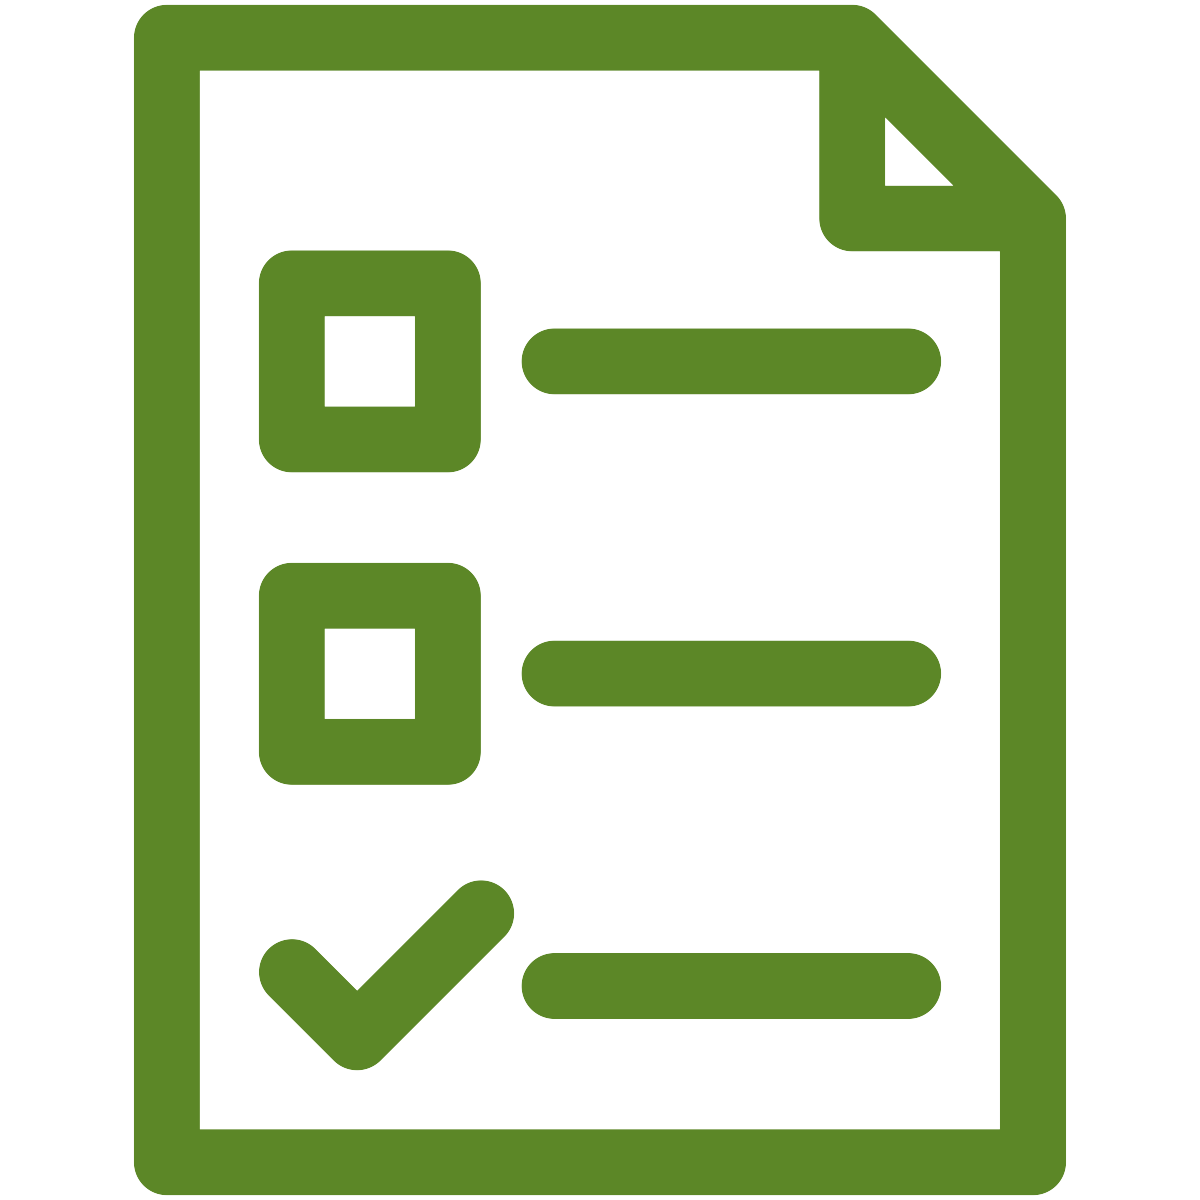 Green checklist icon